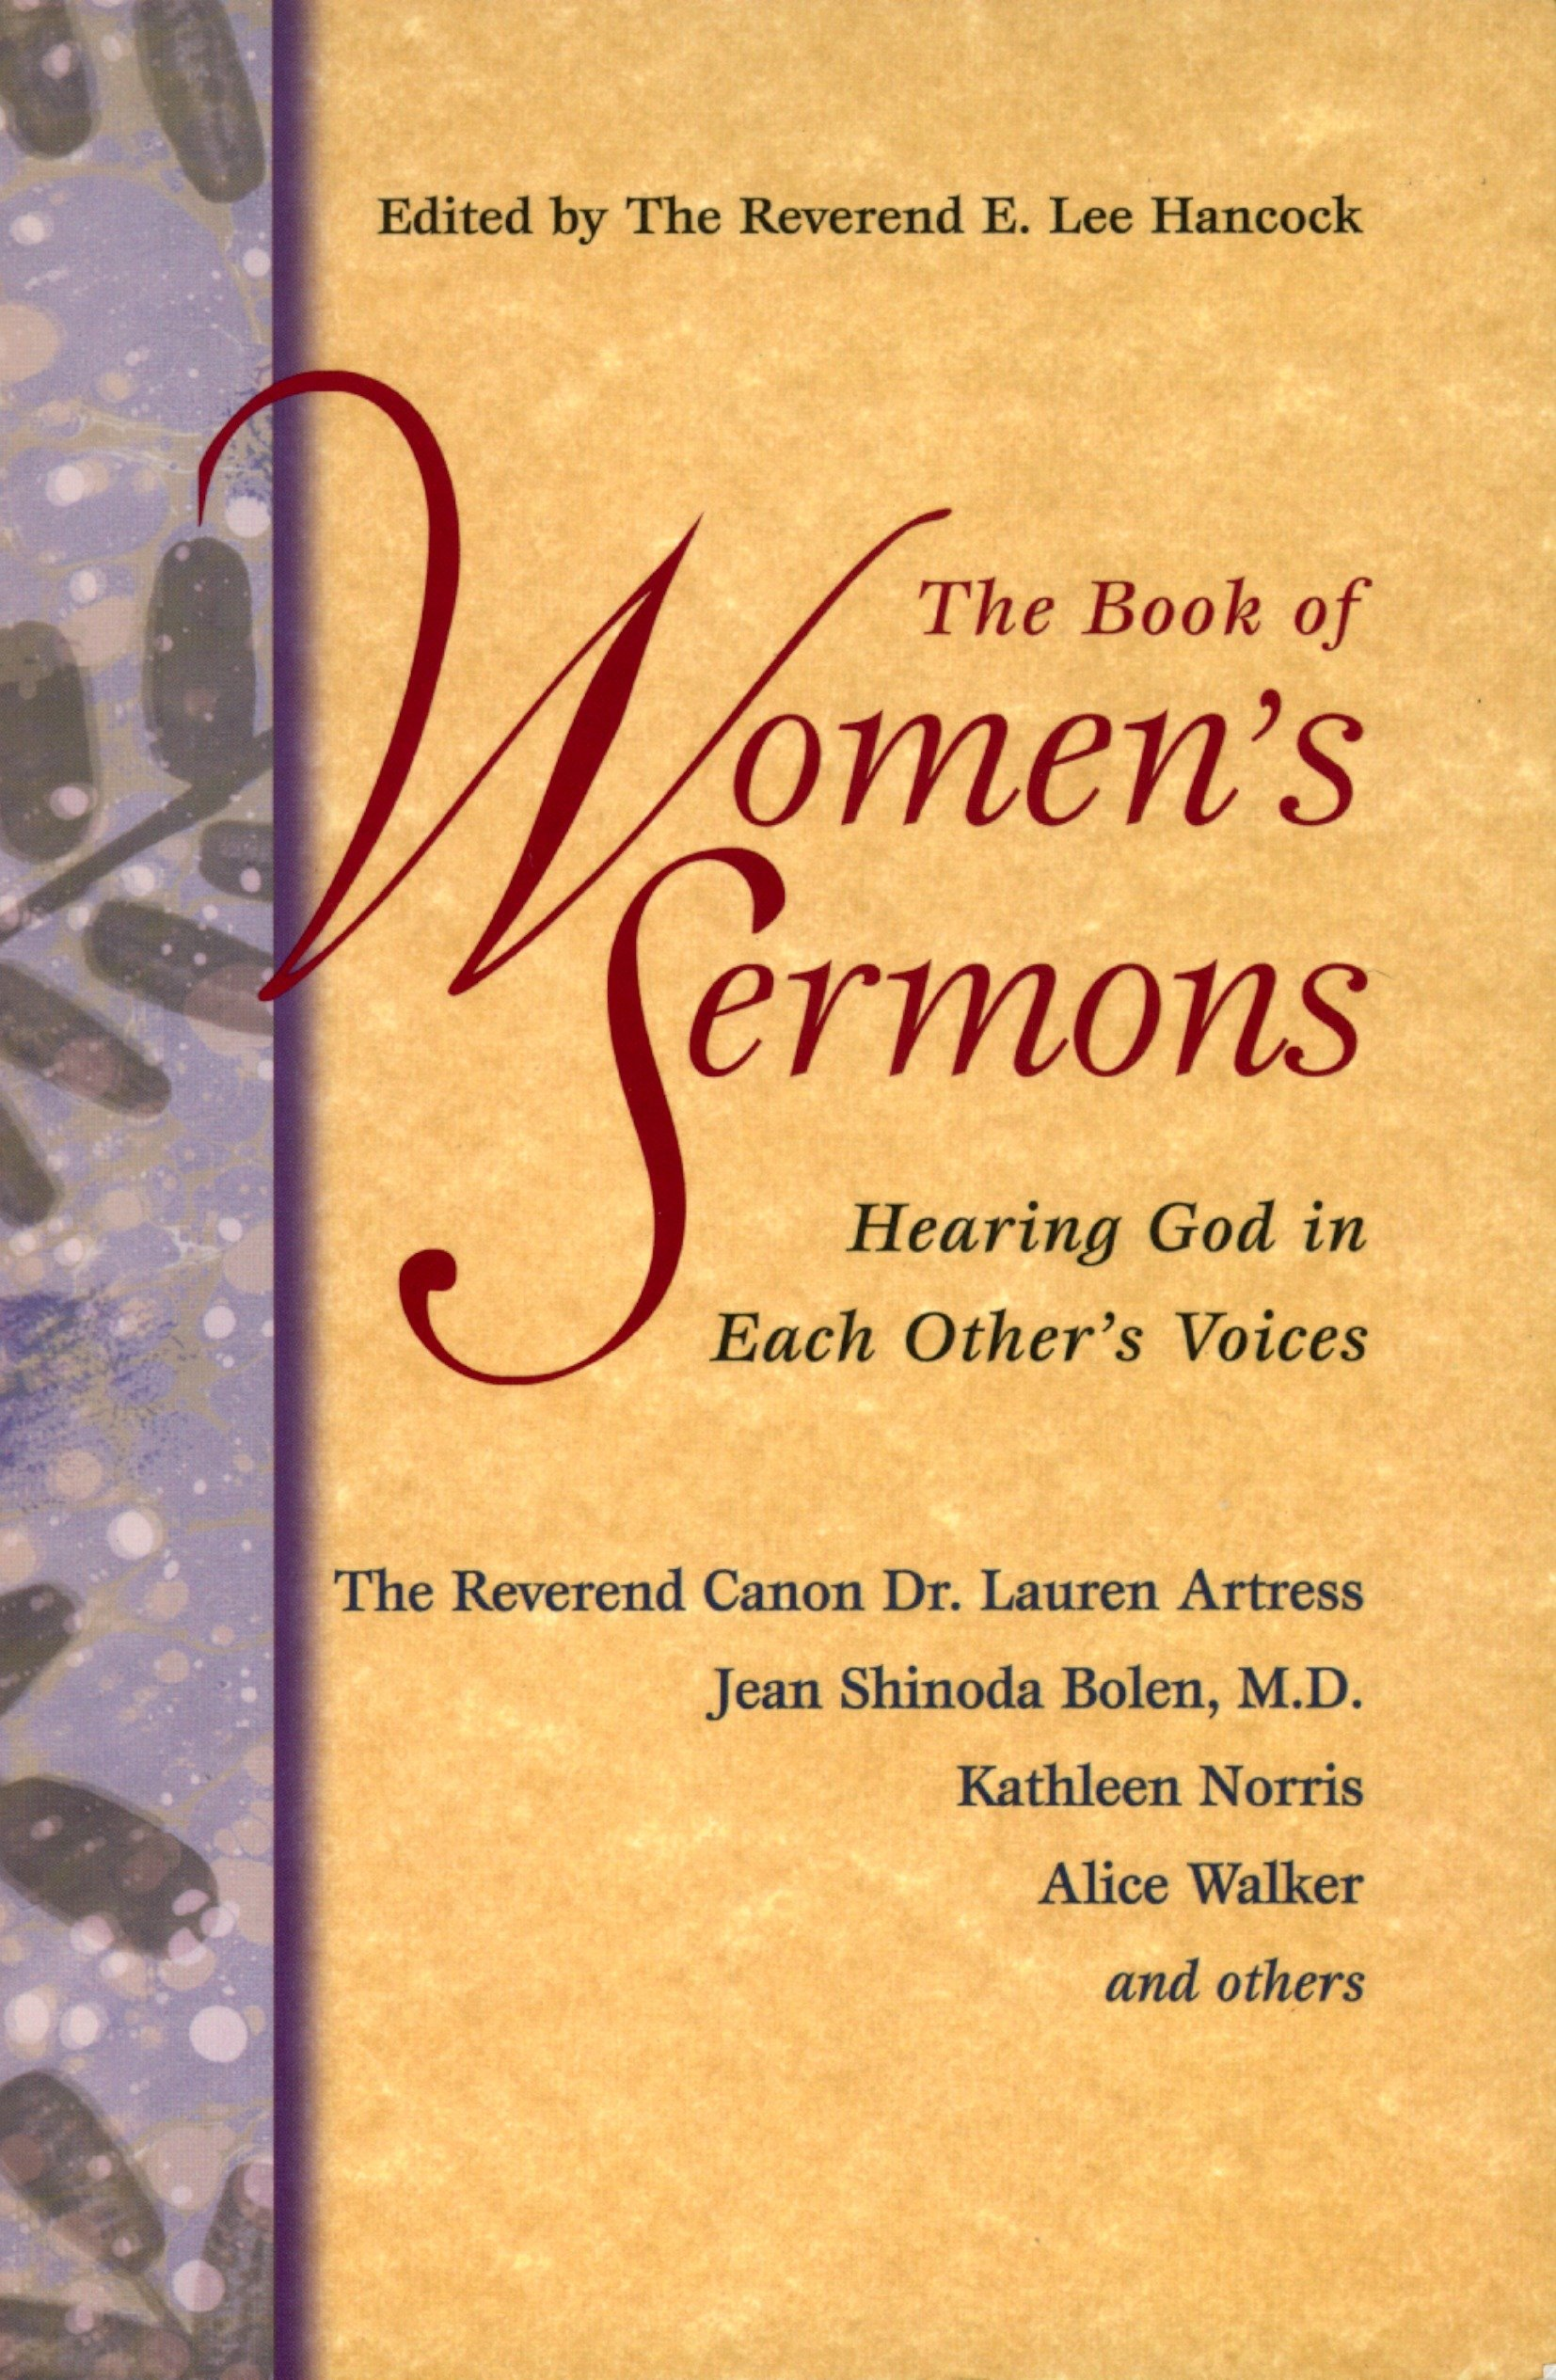 Amazon com: The Book of Women's Sermons: Hearing God in Each